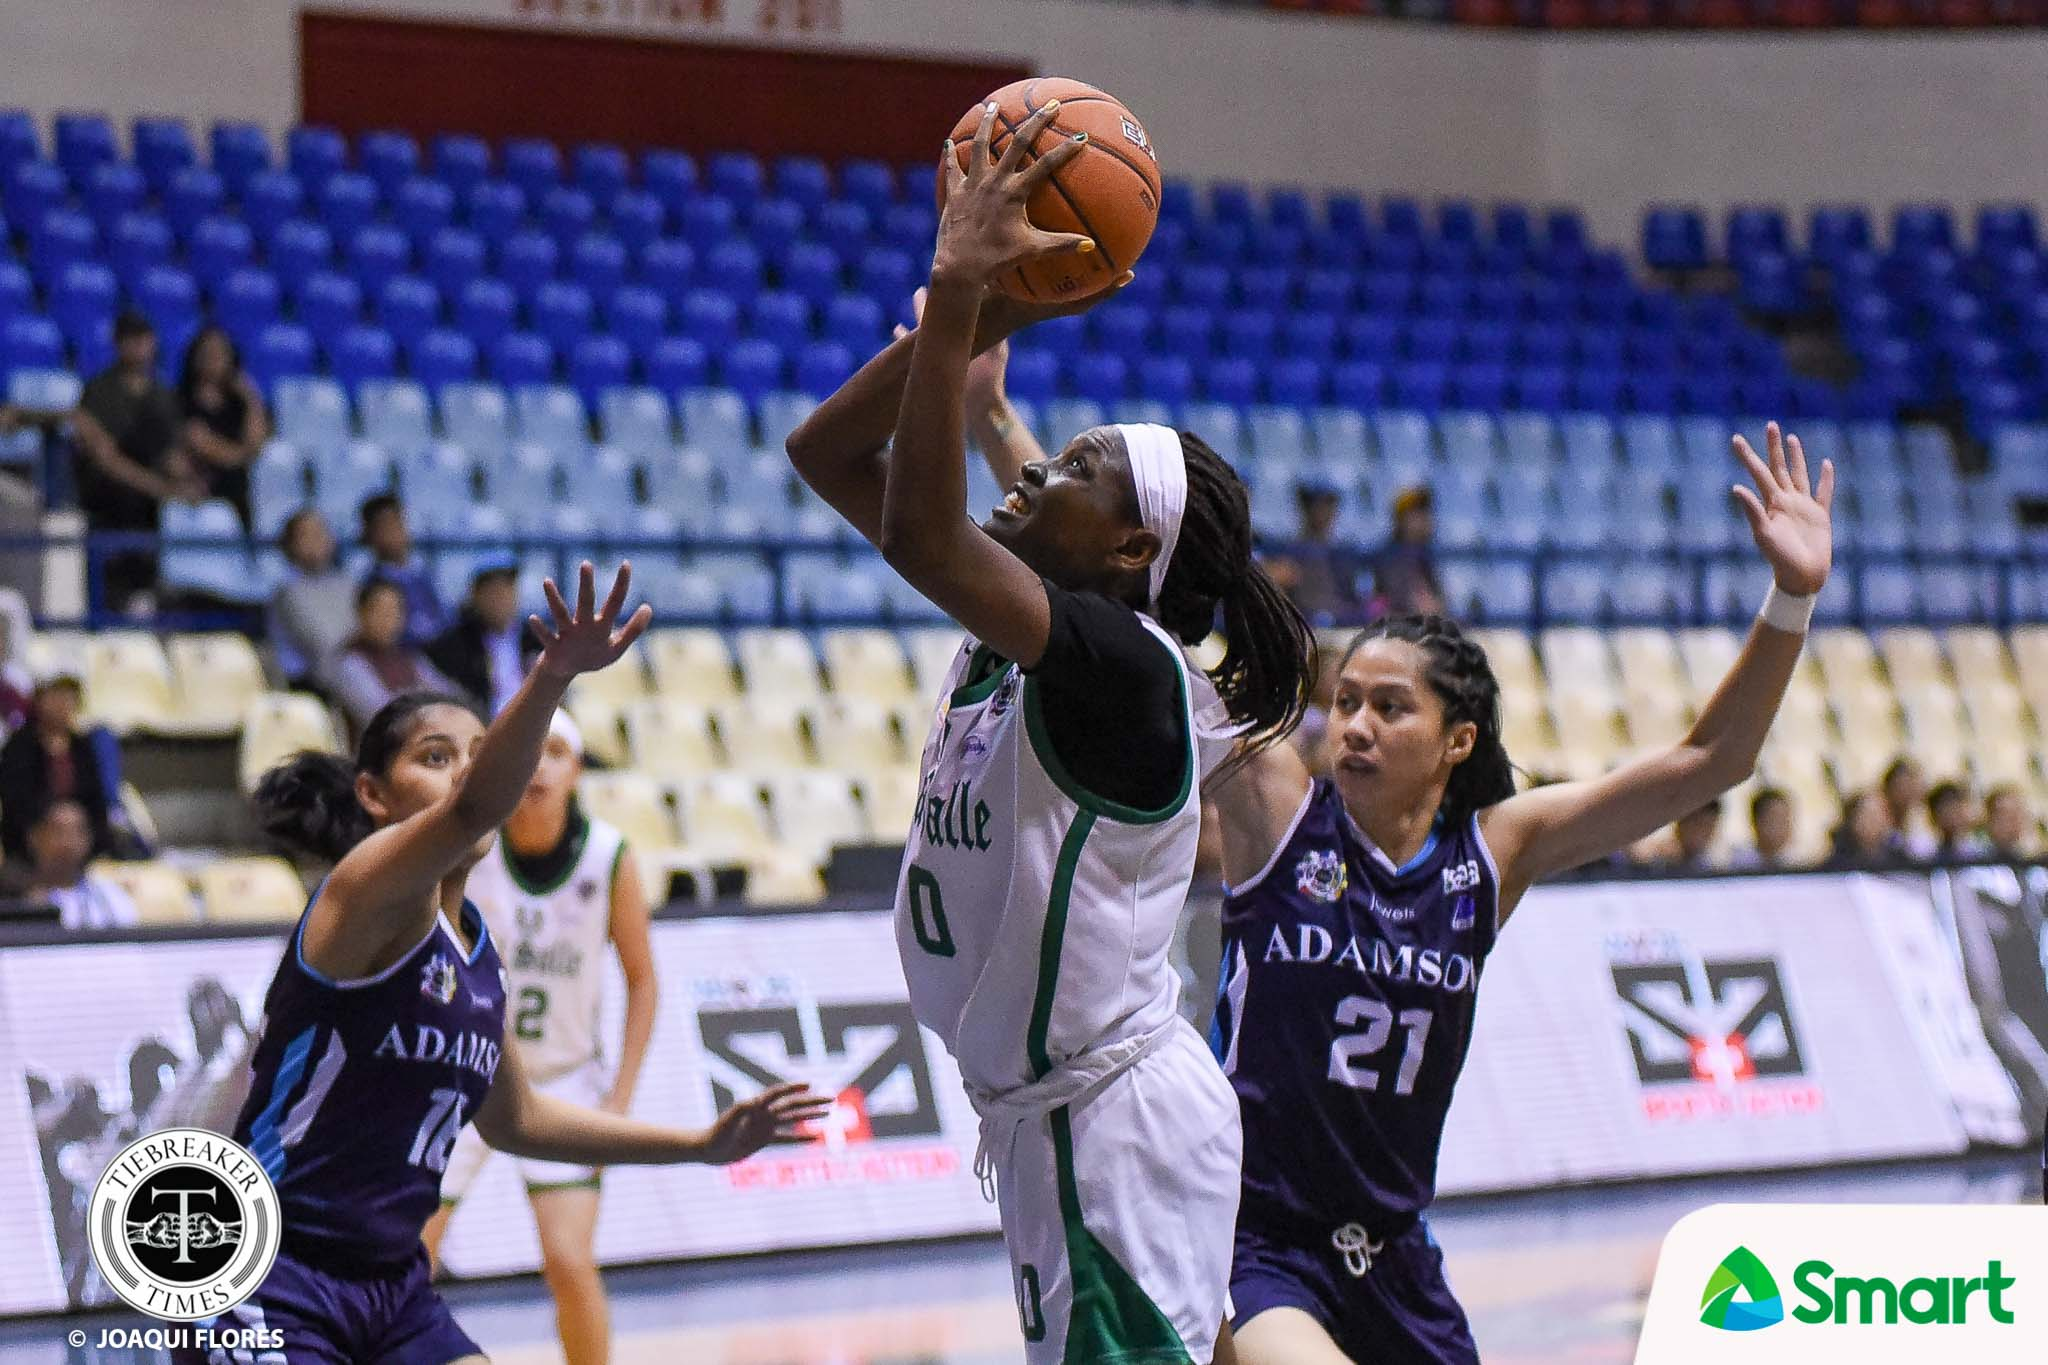 Tiebreaker Times La Salle shackles Mar Prado, stops Adamson's three-game winning streak AdU Basketball DLSU News UAAP  UAAP Season 82 Women's Basketball UAAP Season 82 Mar Prado Lhyn Bilbao Lee Sario Kent Pastrana Ewon Arayi DLSU Women's Basketball Cholo Villanueva Angel Quingco Adamson Women's Basketball